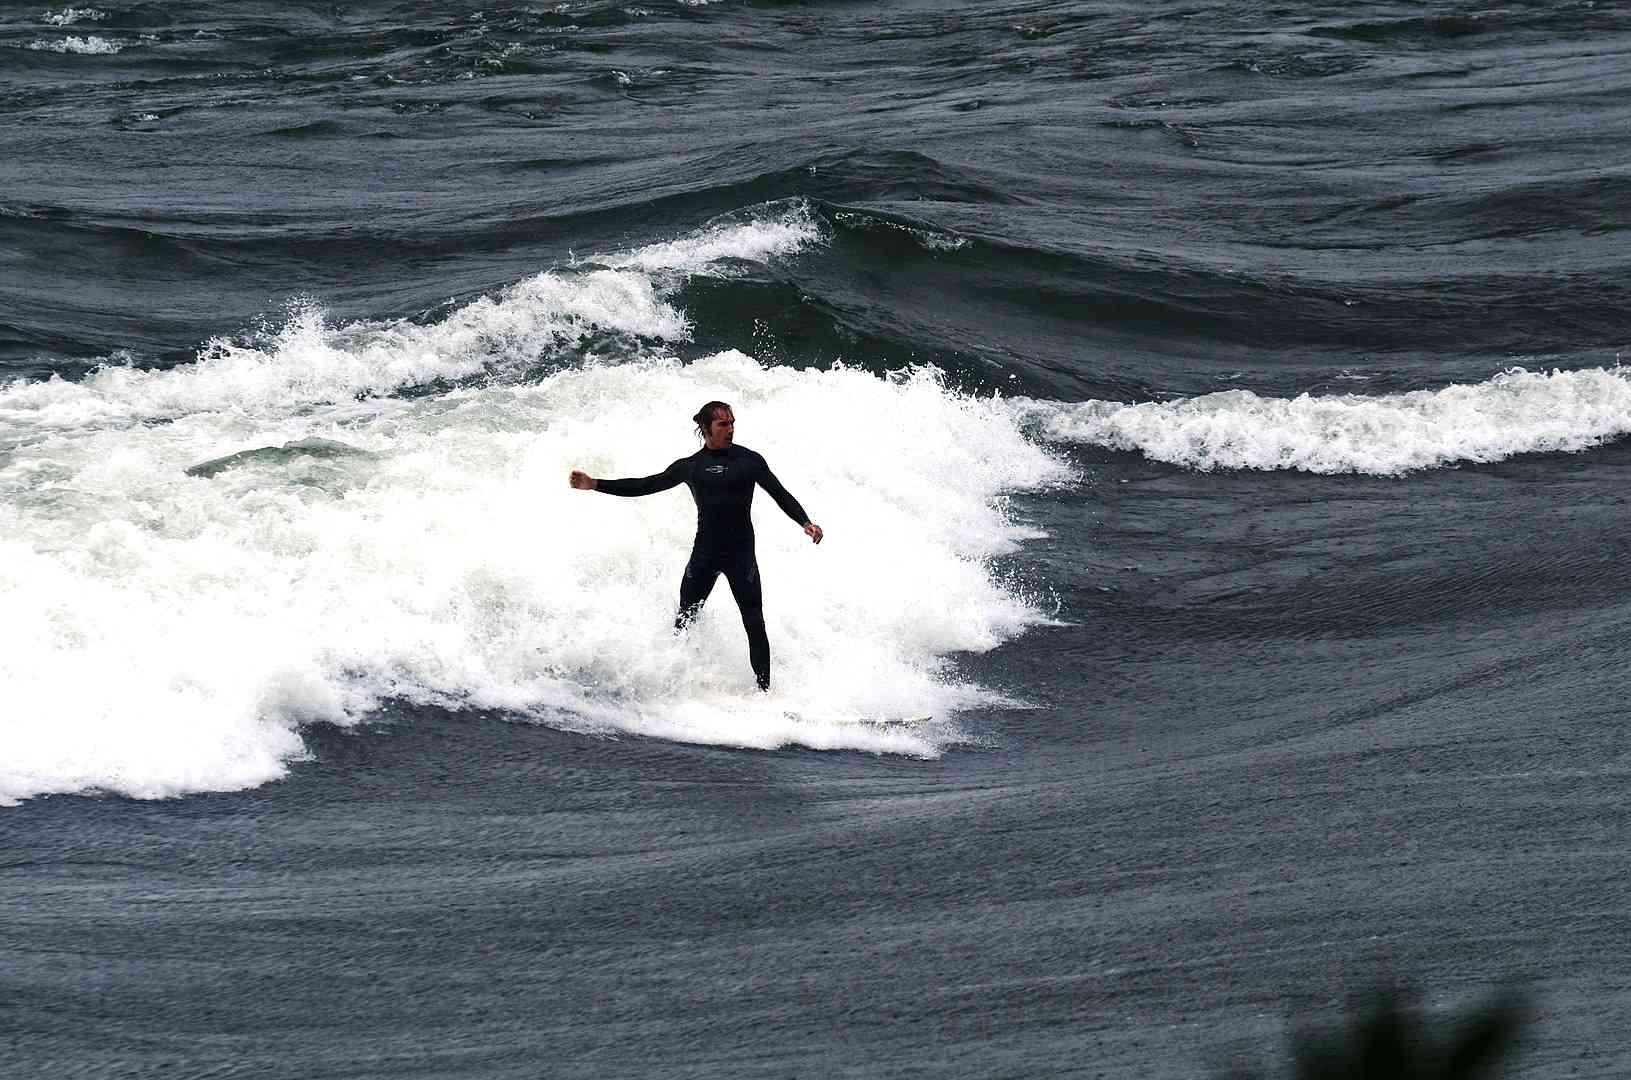 Aerial view of. a surfer on the Habitat 67 wave on the Saint Lawrence River in Montreal